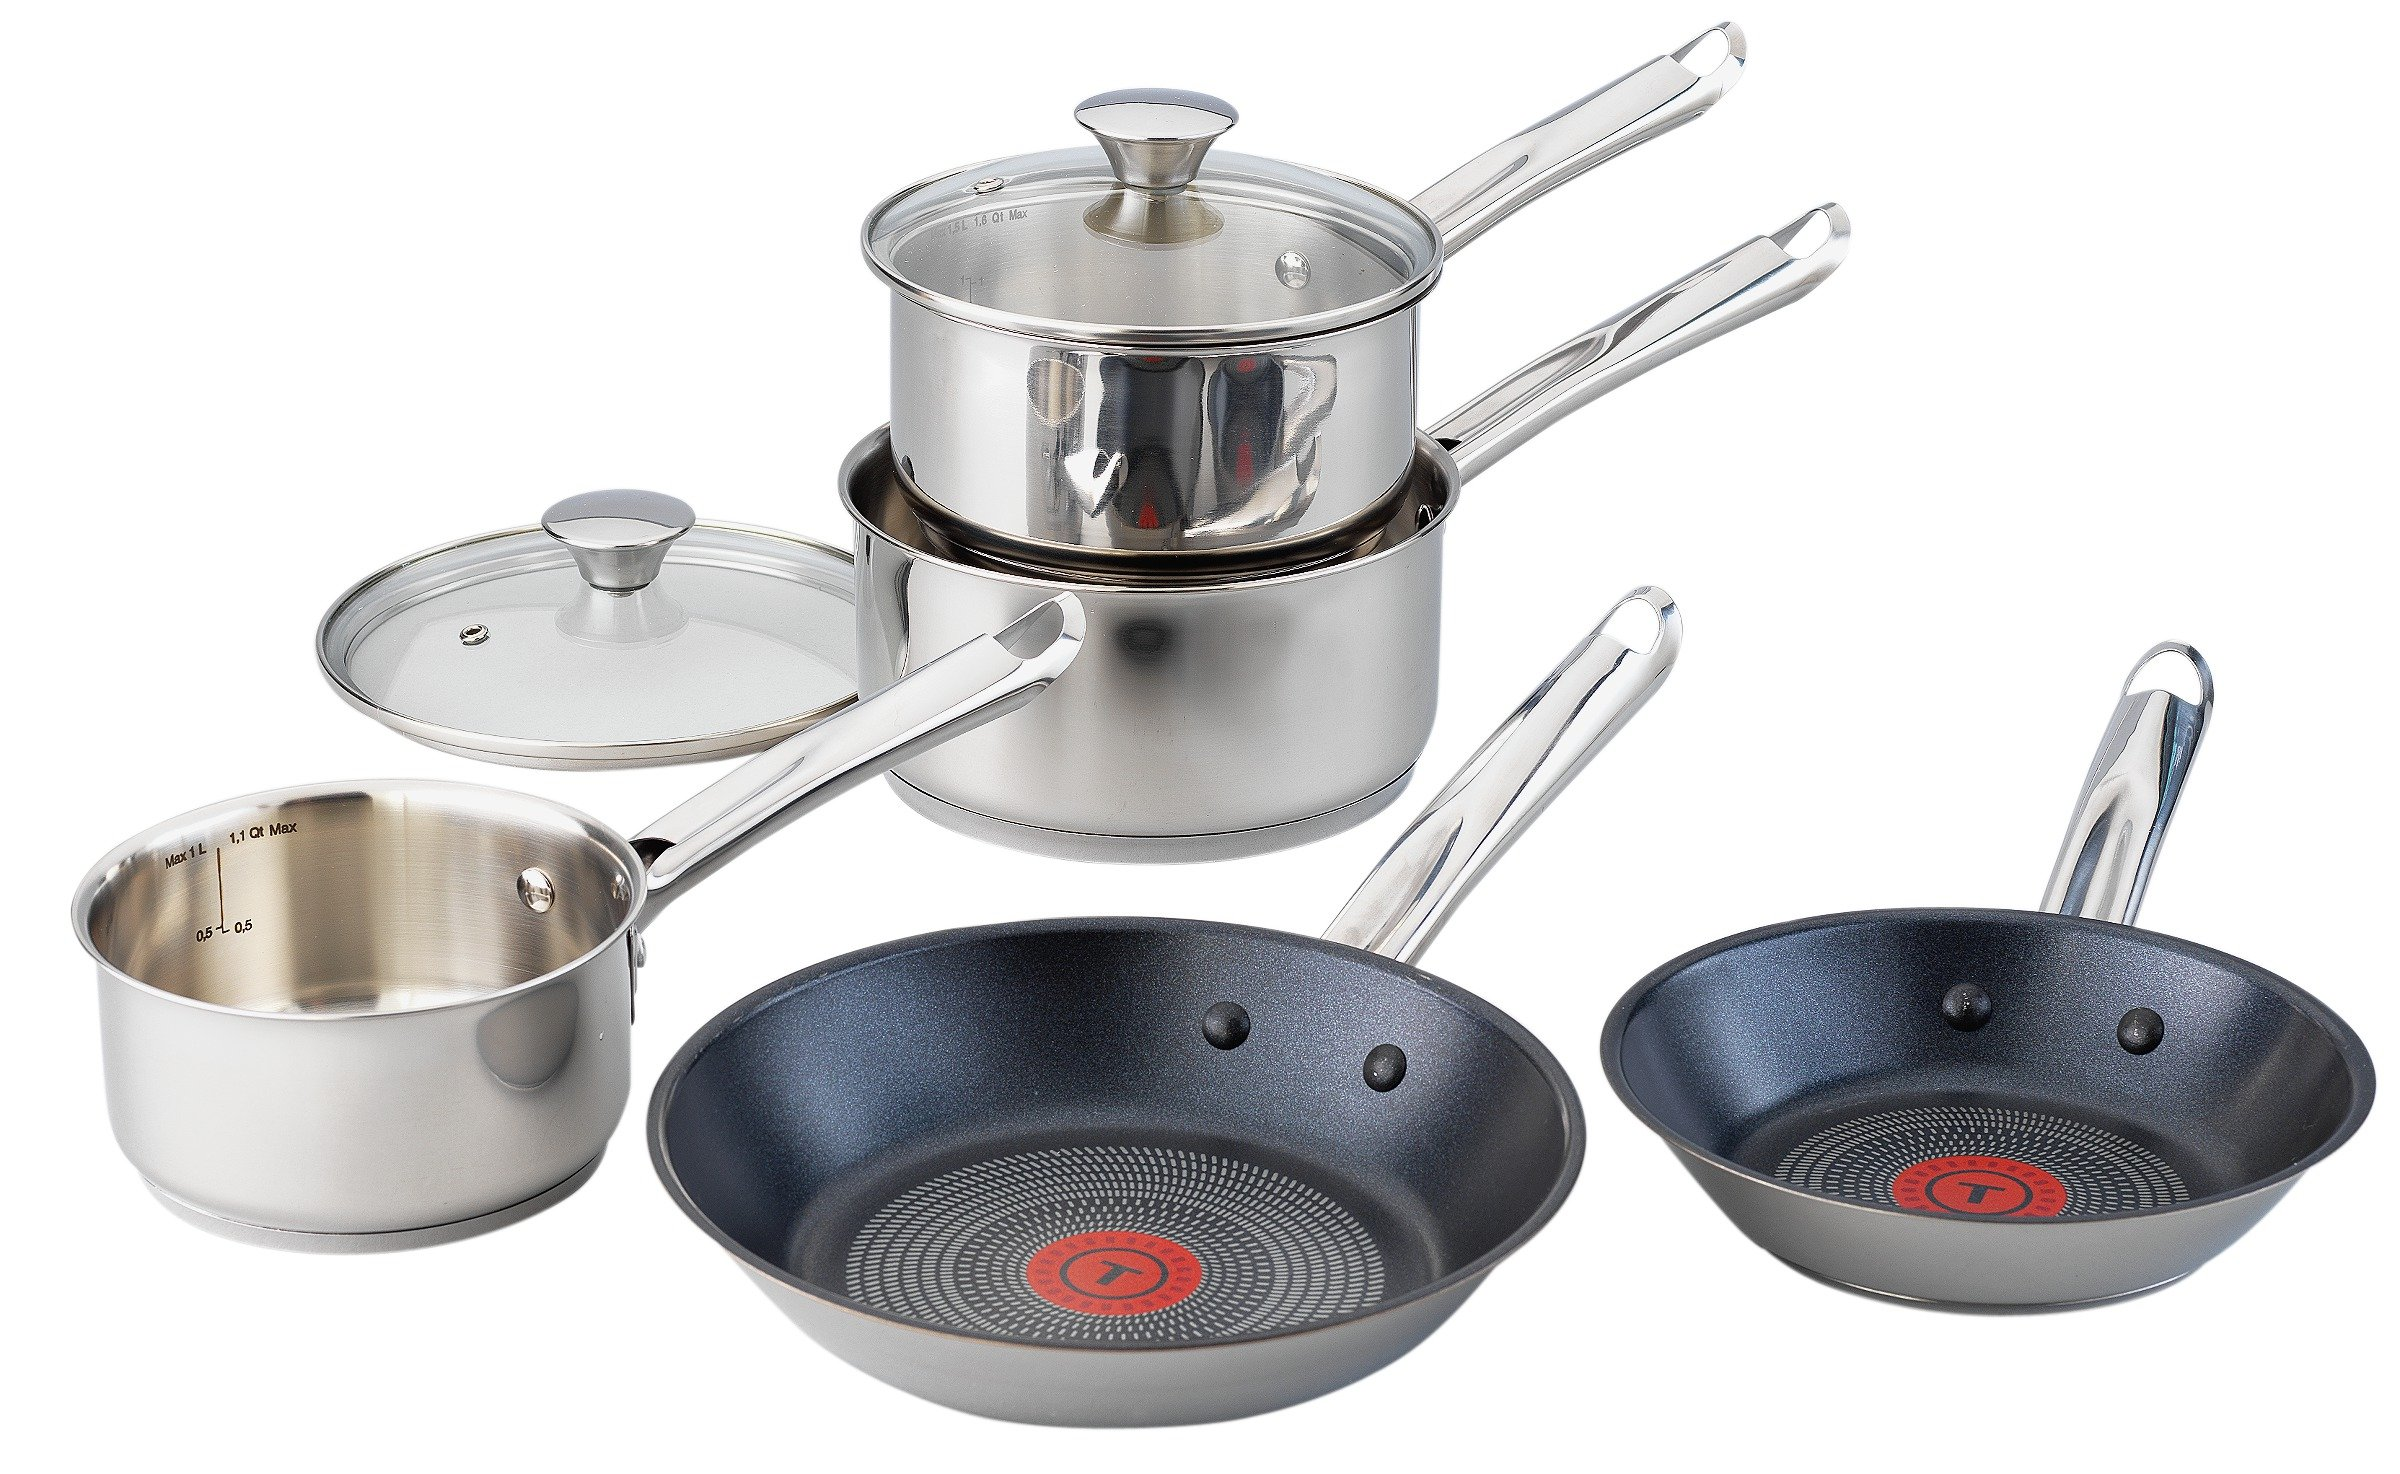 tefal 5 piece non stick stainless steel pan set gay. Black Bedroom Furniture Sets. Home Design Ideas